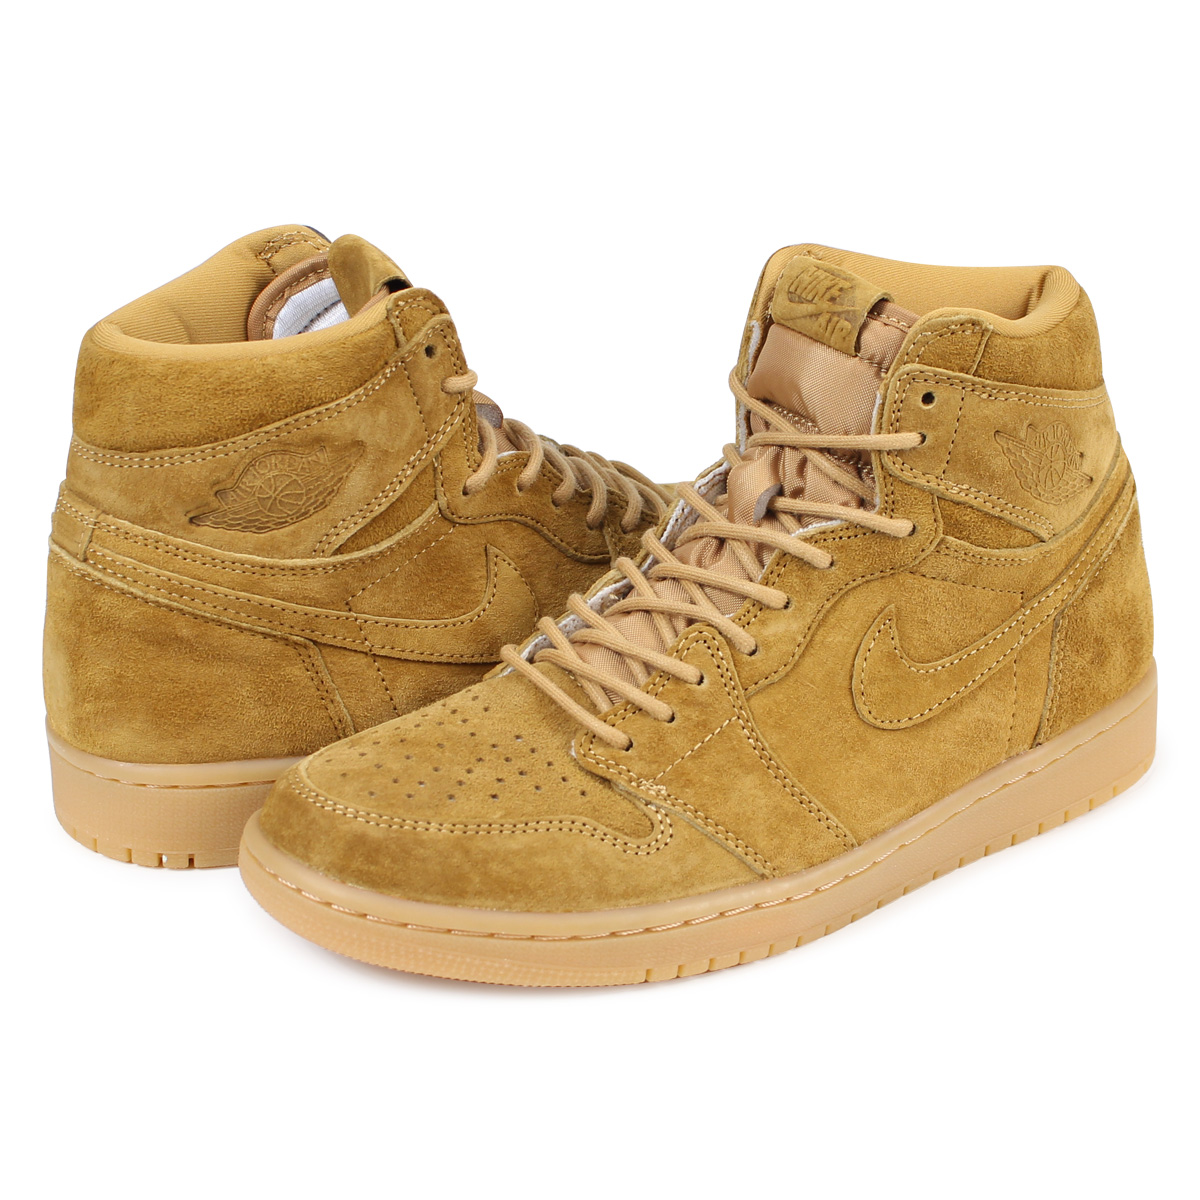 premium selection 55cca e65a5 Nike NIKE Air Jordan 1 nostalgic high sneakers men AIR JORDAN 1 RETRO HIGH  OG 555,088-710 beige [197]